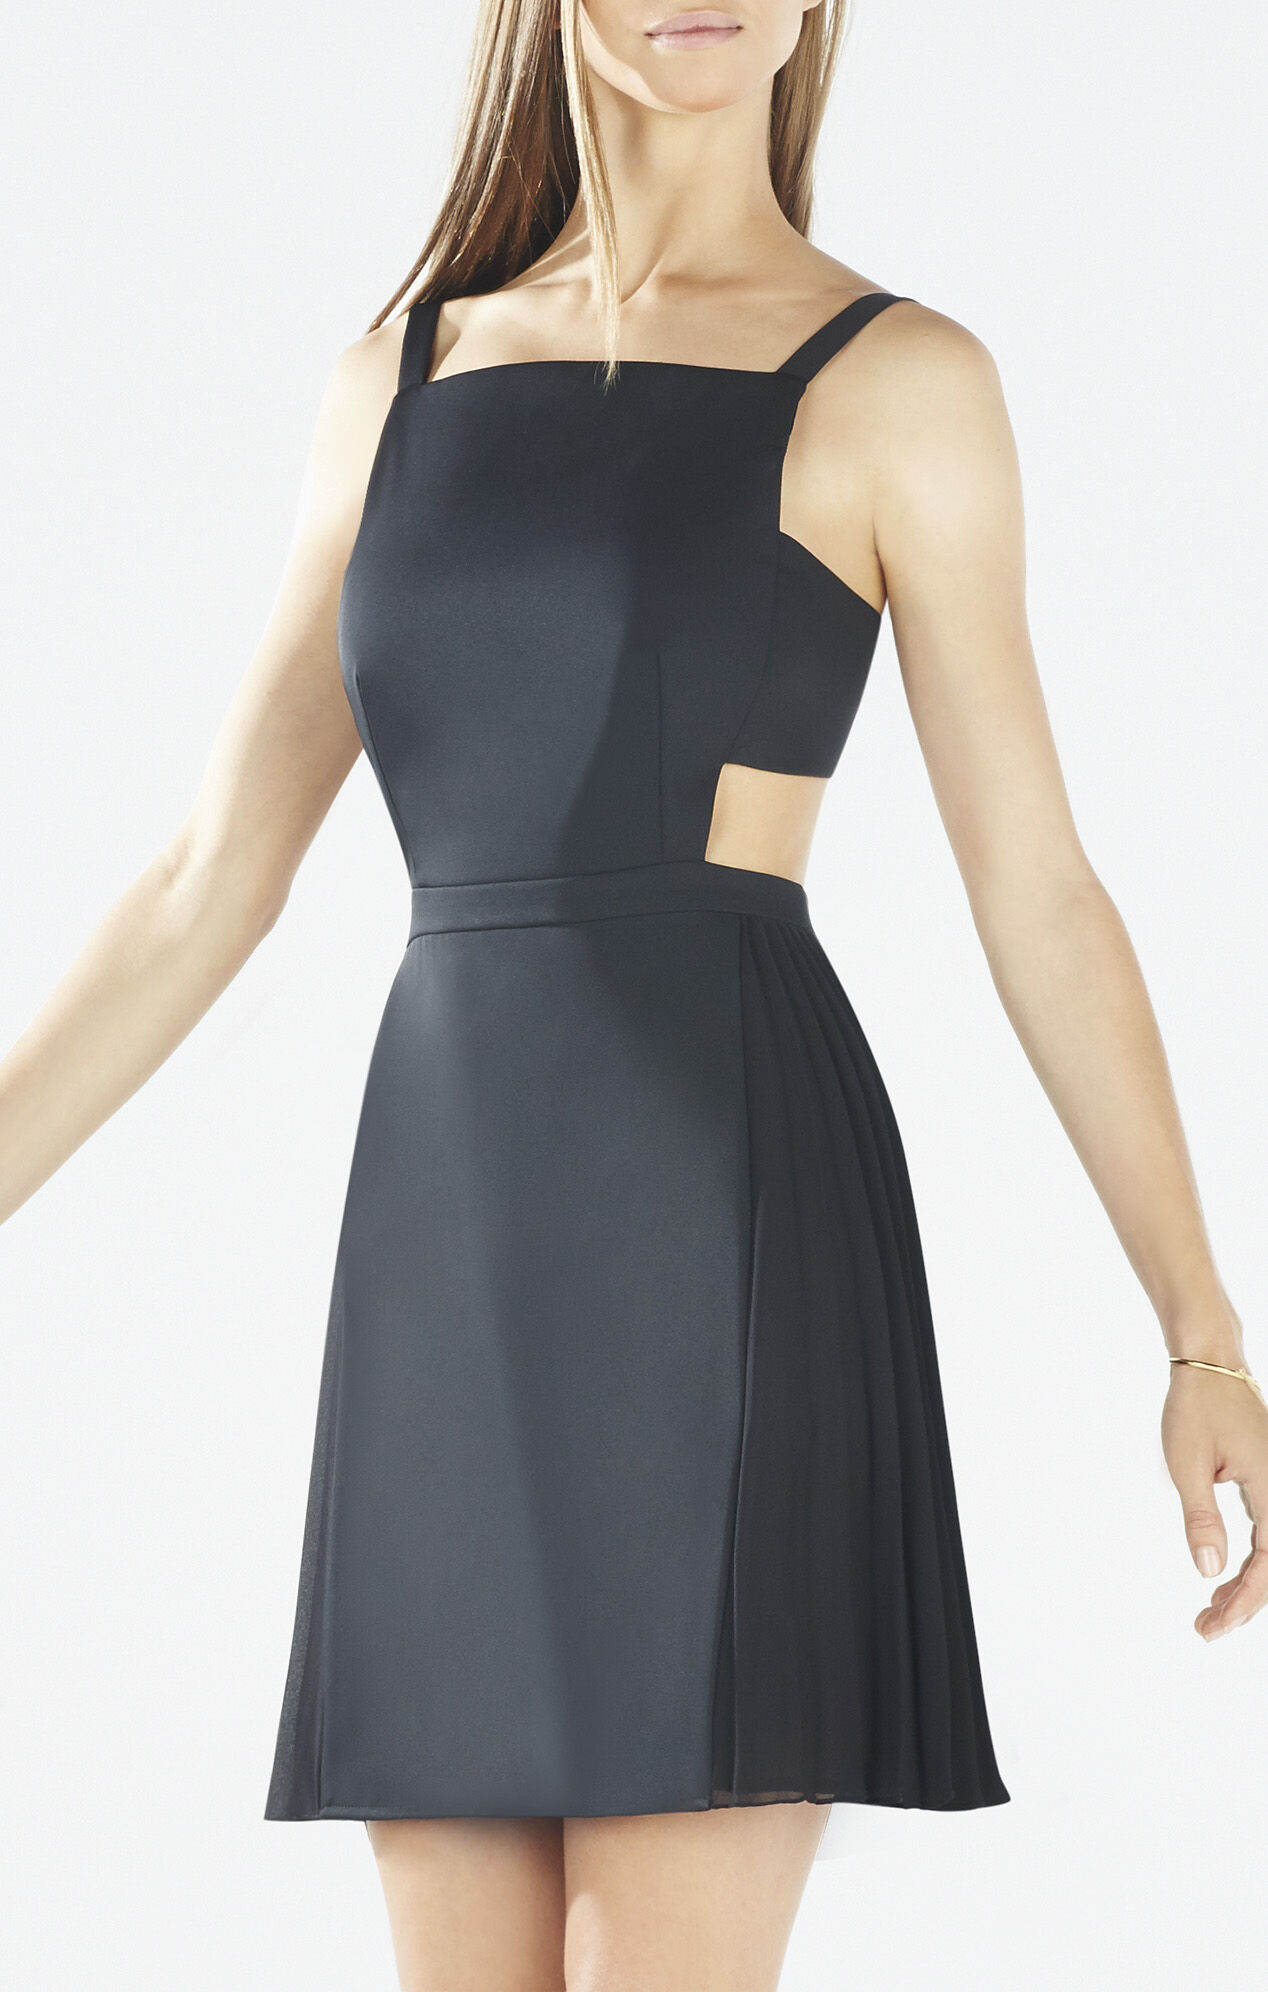 Dress with Open Sides